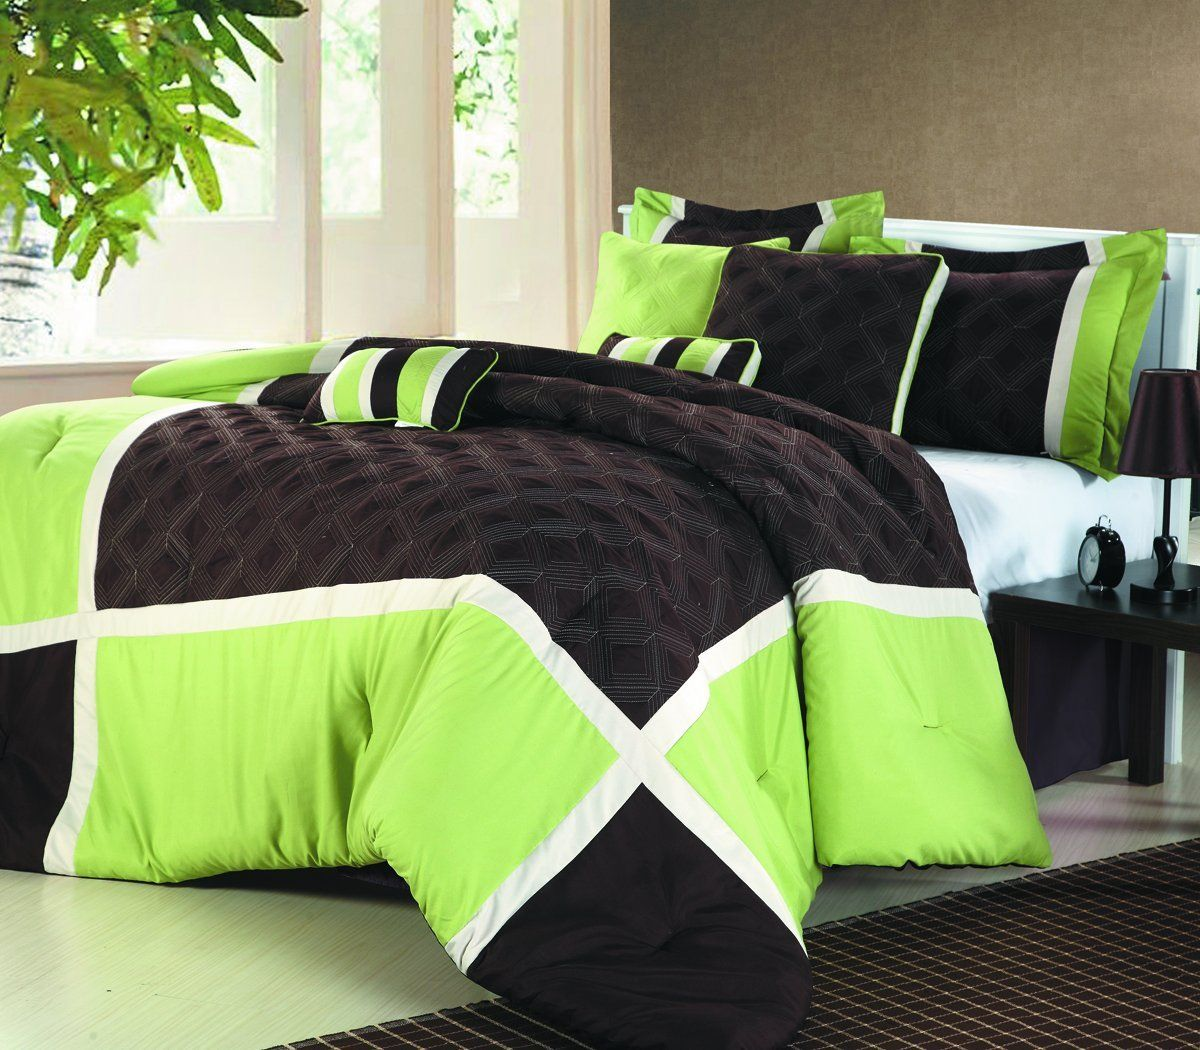 Lime green and black bedding sweetest slumber my new Green and black bedroom